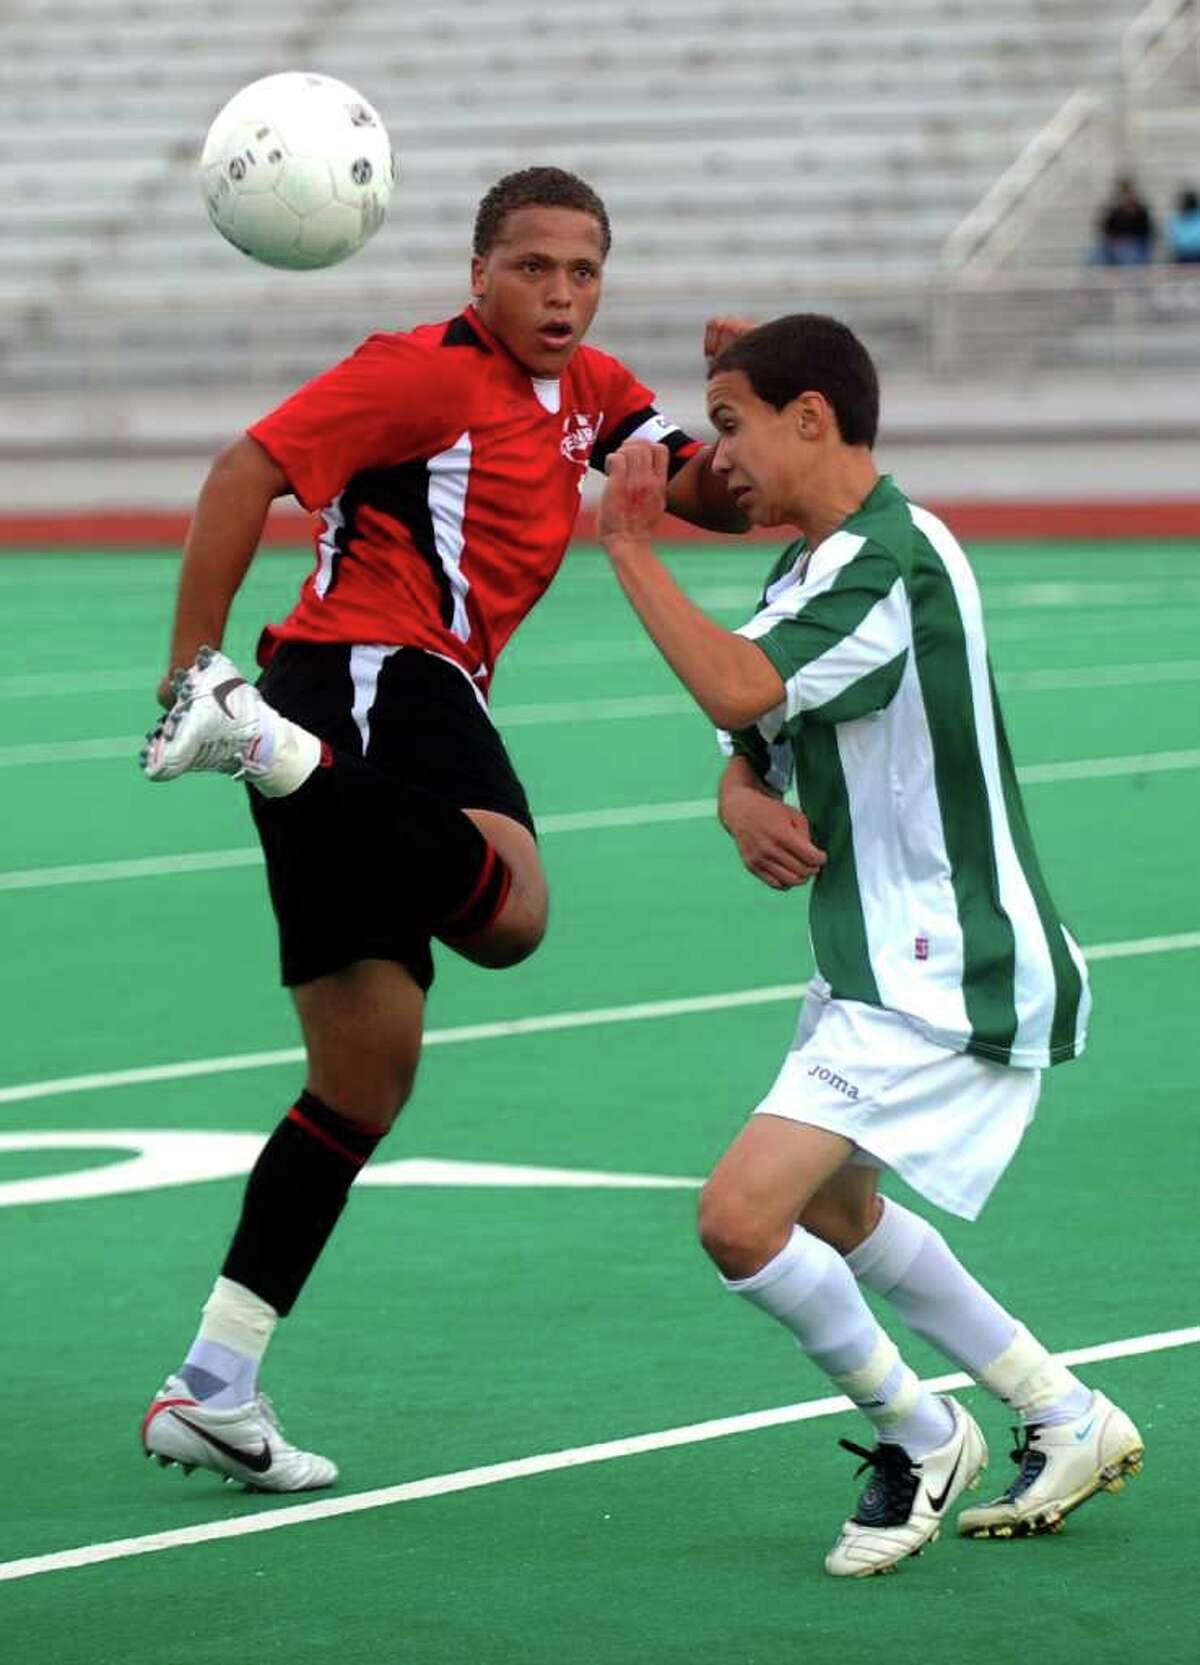 Central's Jenilo Soares, left, and Josue Lopez, right, compete for control of the ball during Wednesday's game at Bridgeport Central High School on September 6, 2010.